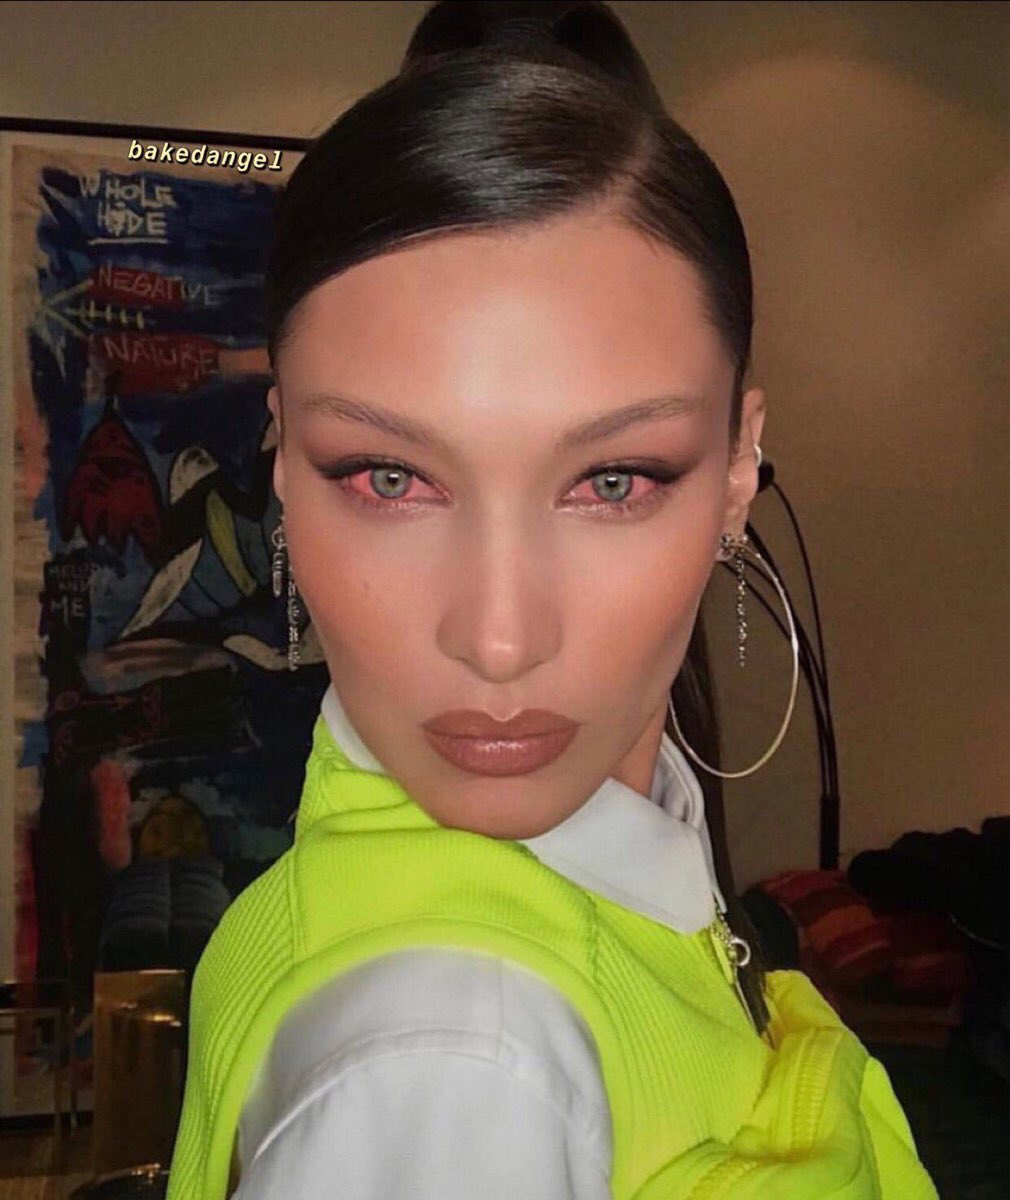 me serving face in the mirror after crying for three hours straight